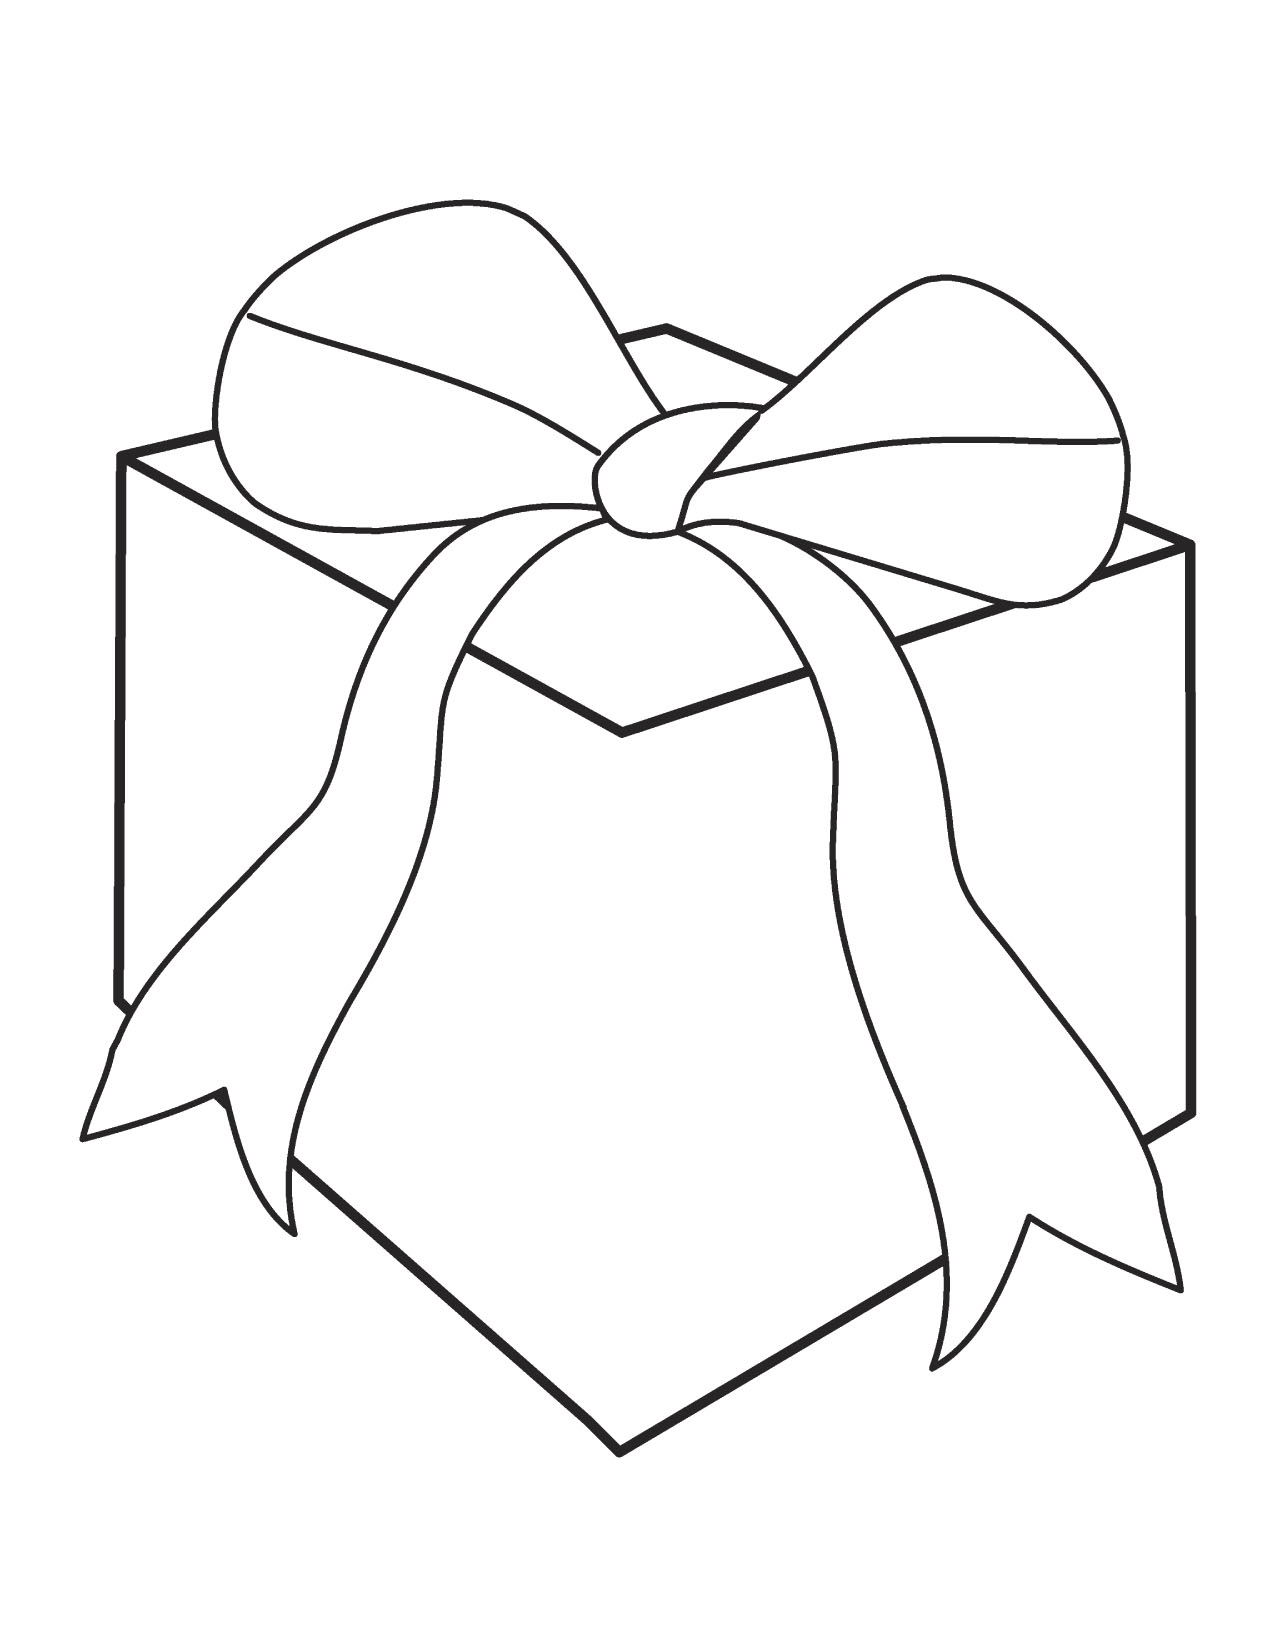 Free Gifts Clipart Black And White, Download Free Clip Art.